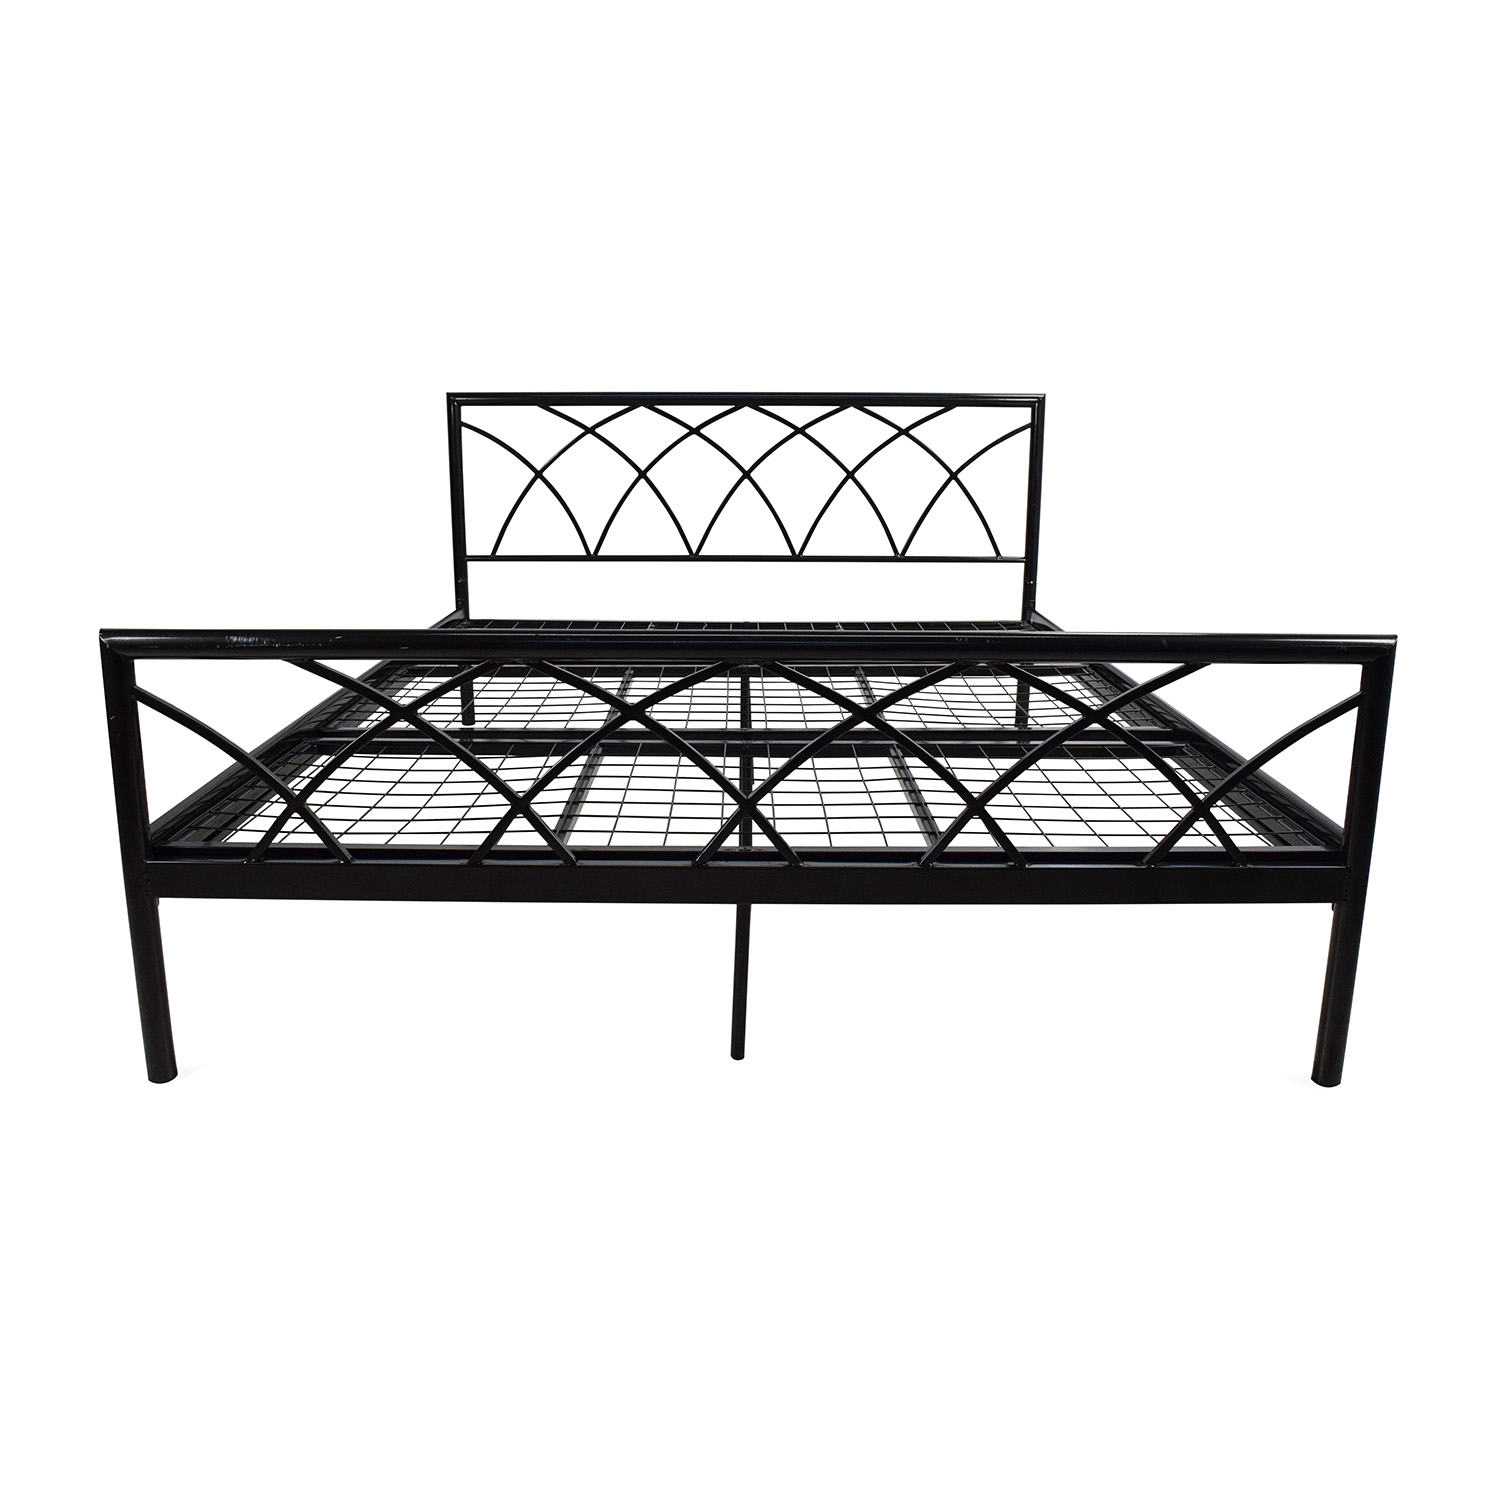 overstock queen size metal bed frame - Used Bed Frames